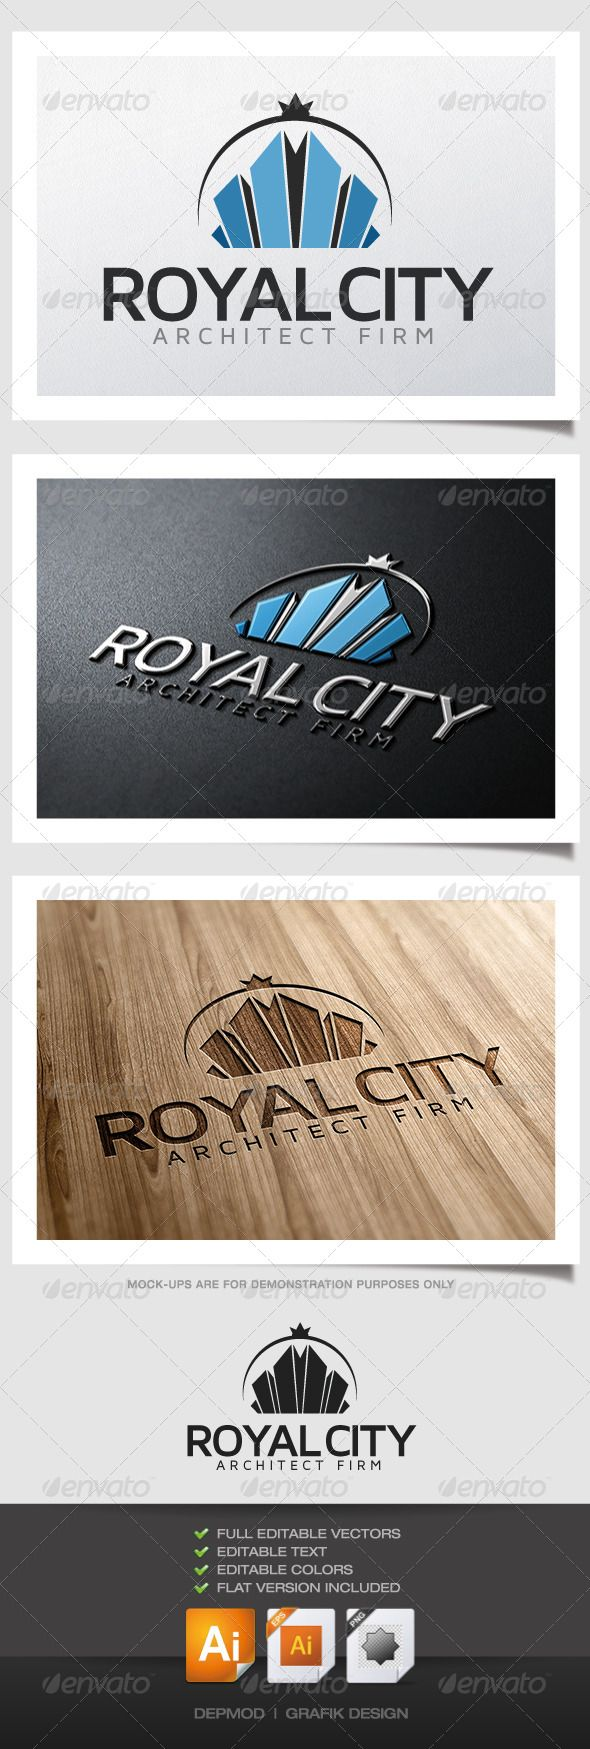 fir letter format%0A Royal City Logo  GraphicRiver Logo of buildings making a crown look  Can be  used